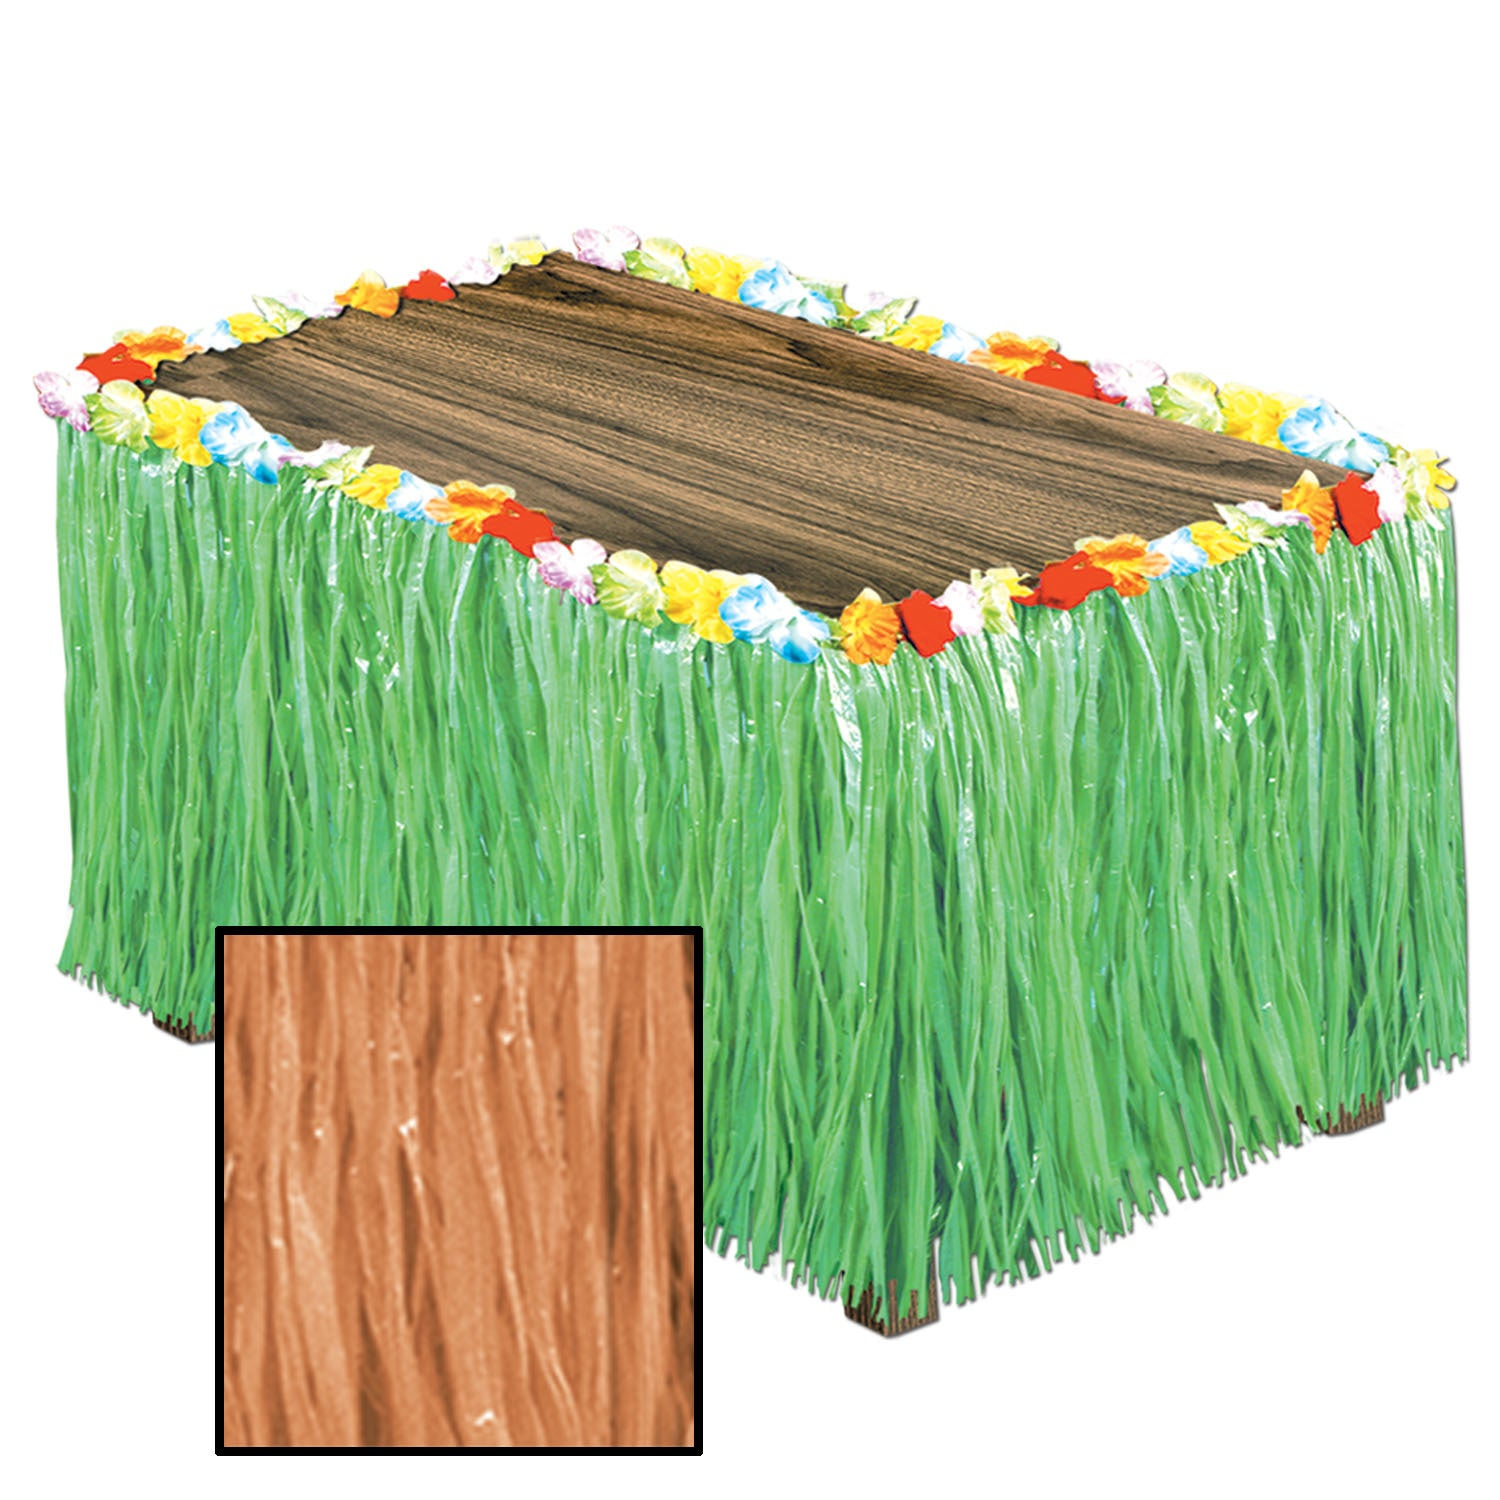 Artificial Grass Table Skirting 75Cm 2.7M